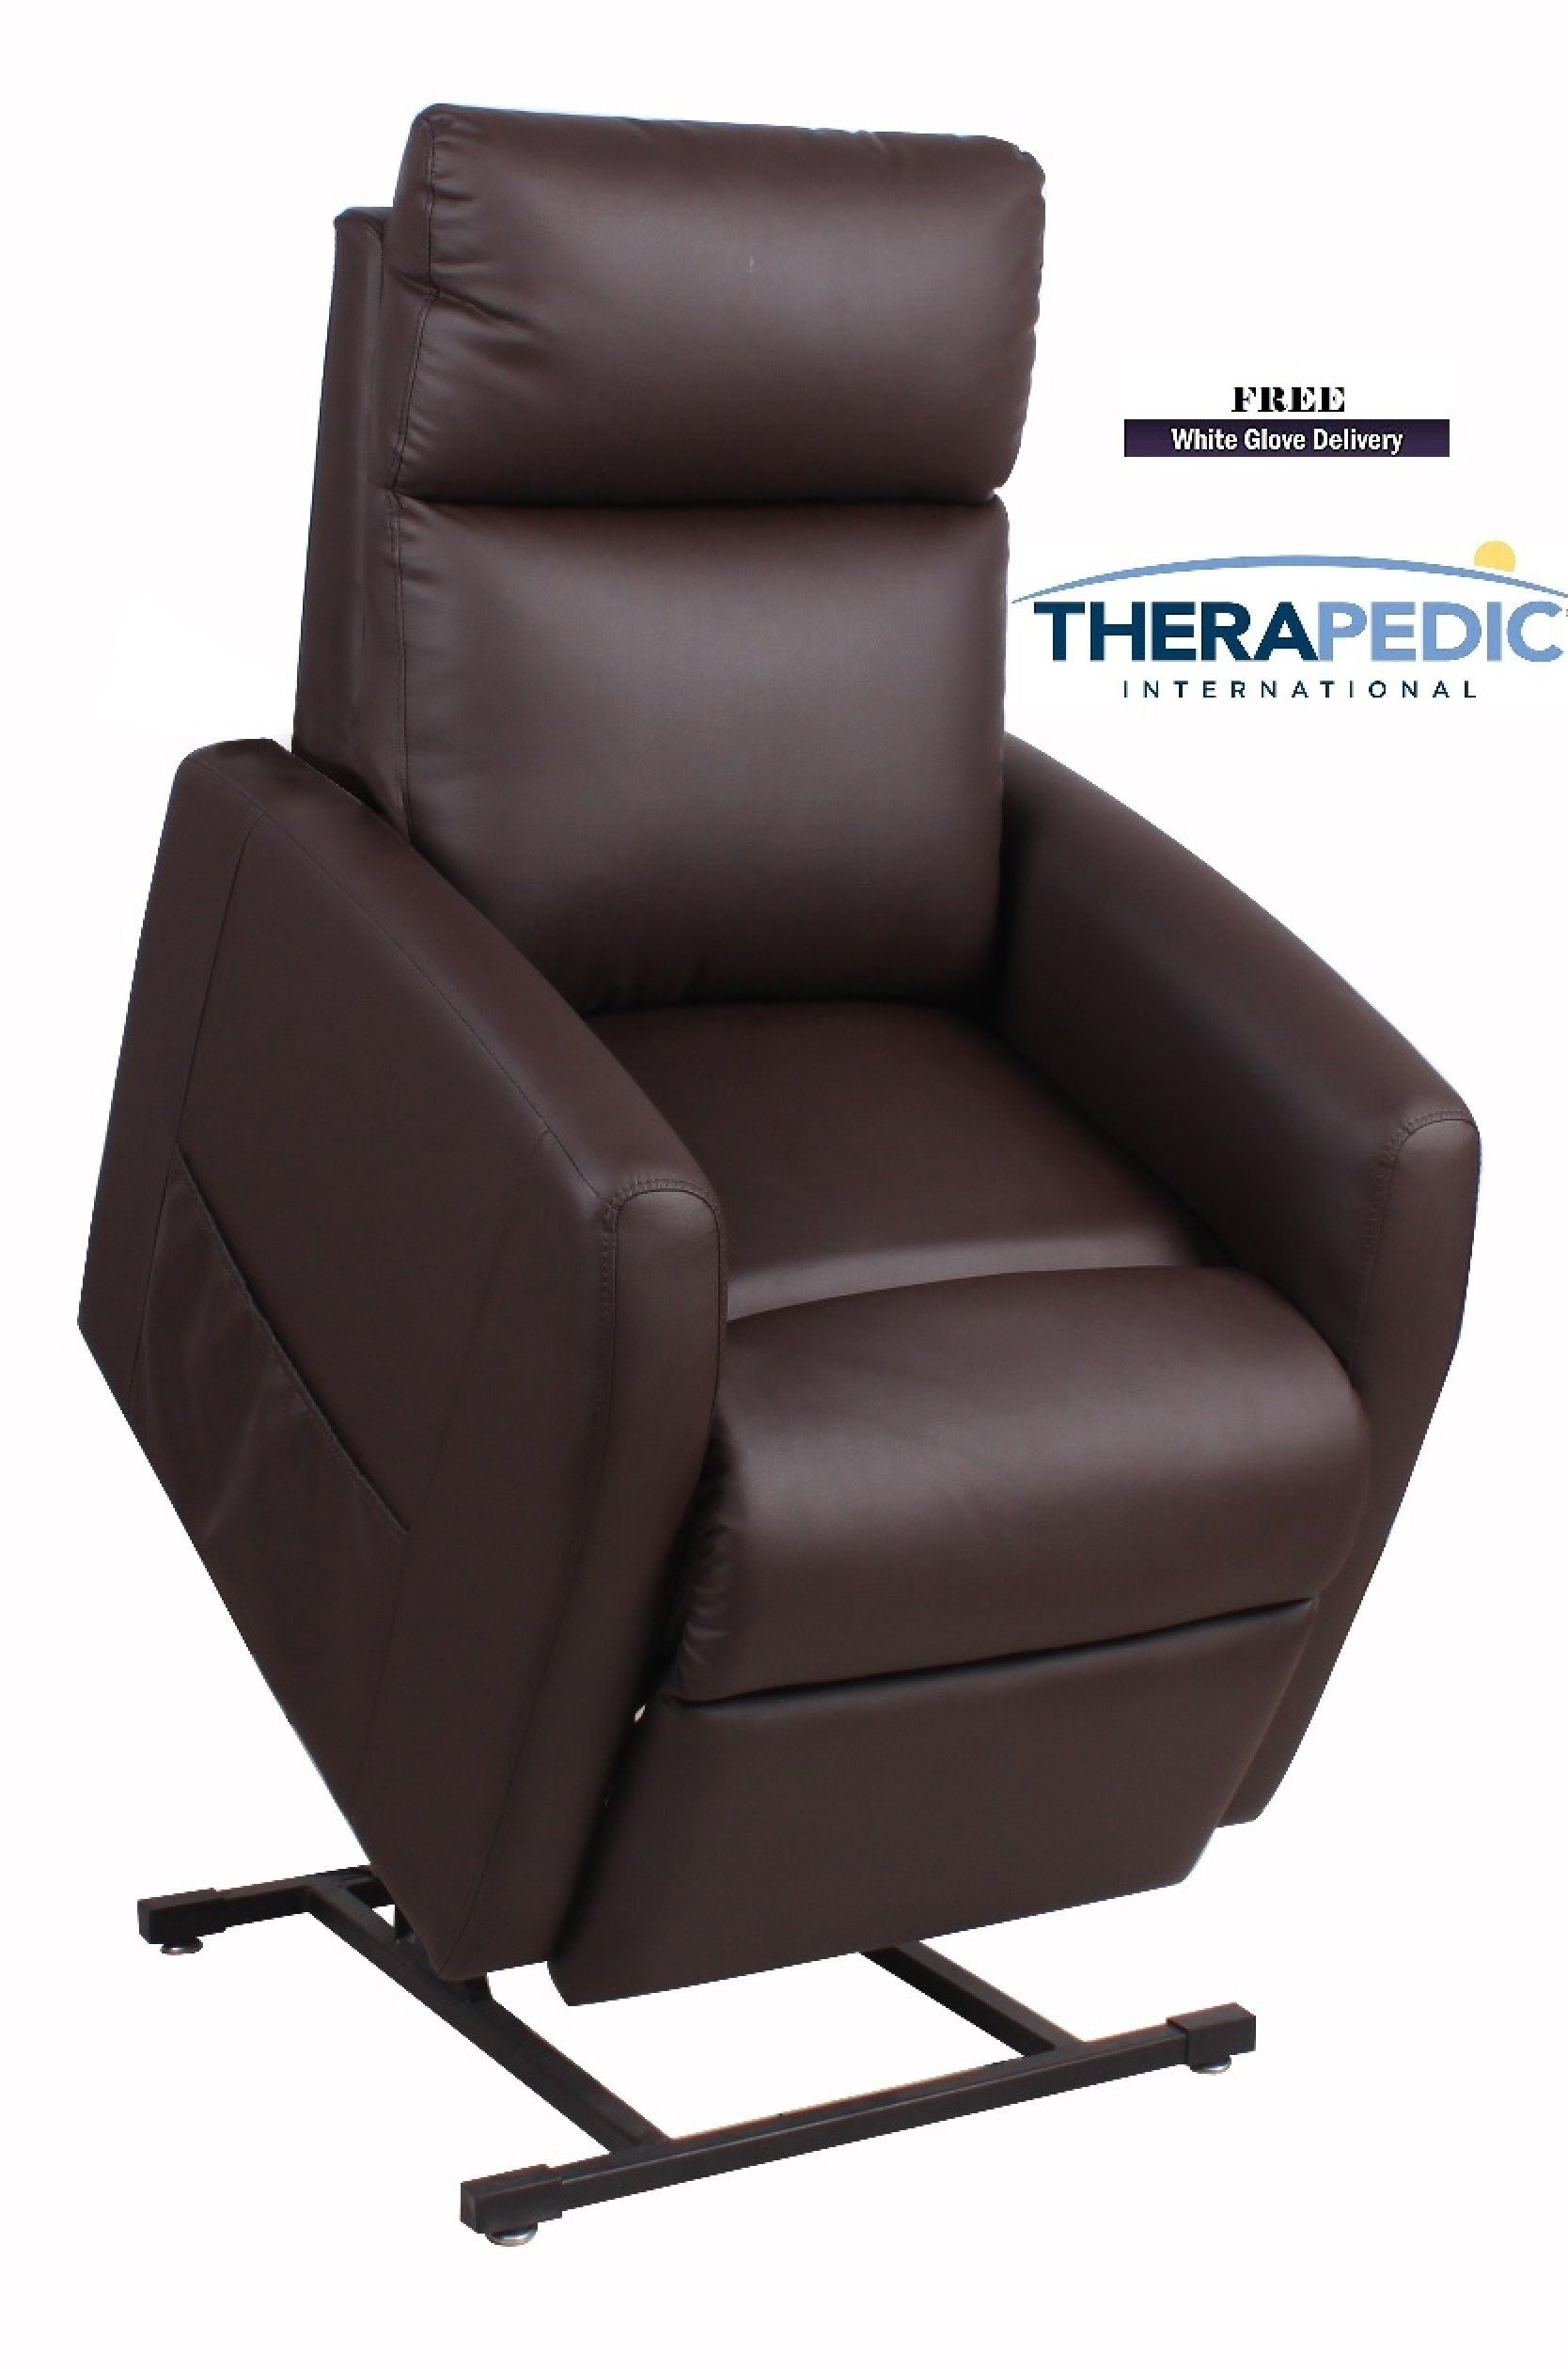 """THERAPEDIC Lift Chair Recliners, The """"Vista"""" - Dark Chocolate ''PU Leather'' - ''Live Smart'' Performance Fabric - TRUSTED BRAND NAME"""